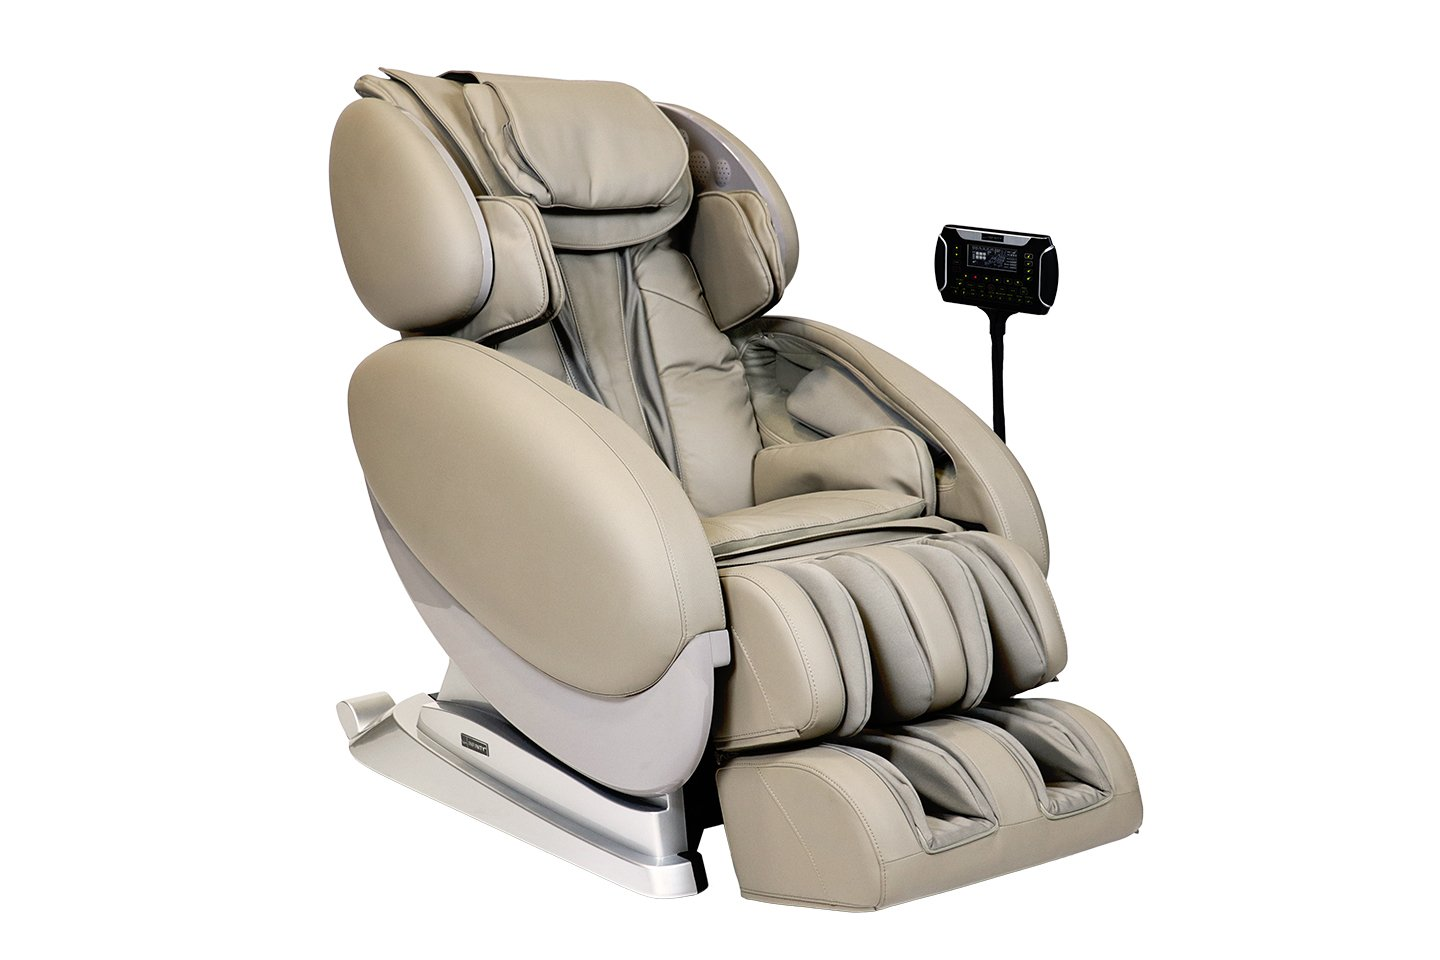 Top 10 Best Japanese Massage ChairReviews in 2021 3